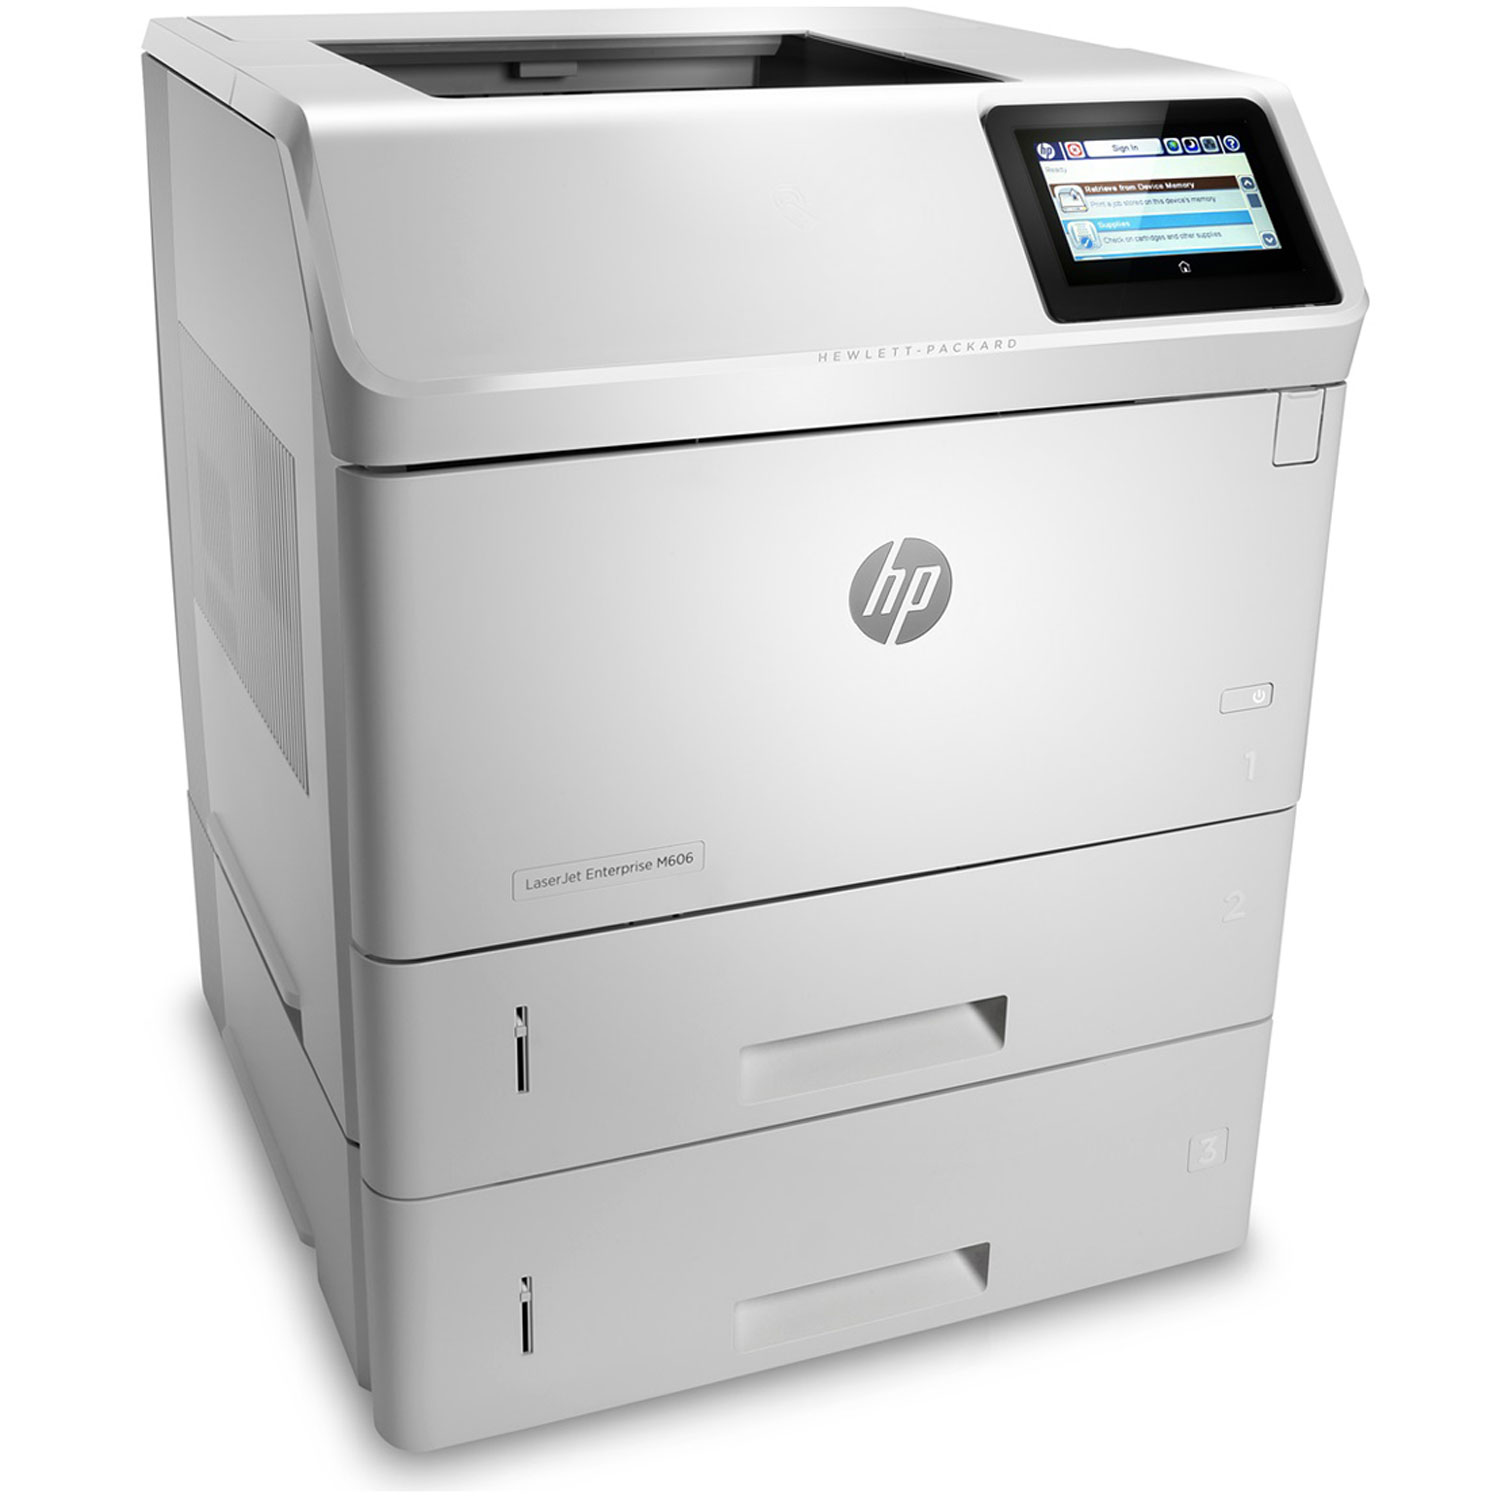 hp laserjet enterprise m606x imprimante laser hp sur. Black Bedroom Furniture Sets. Home Design Ideas